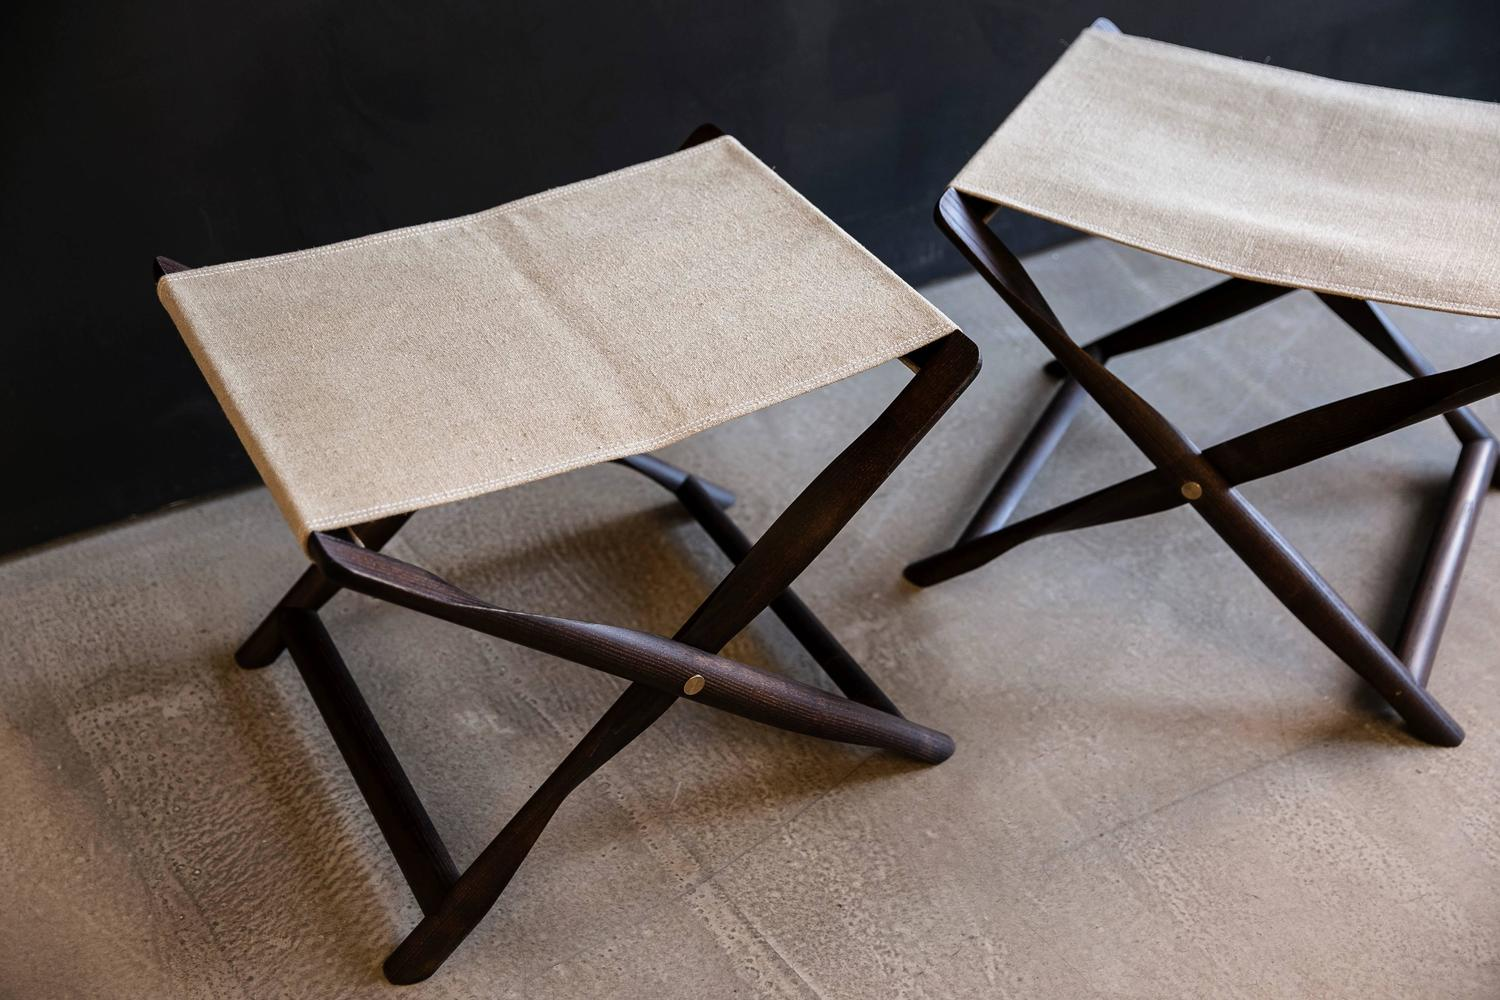 Kaare_Klint_propeller_stools_pair_in_smoked_ash_and_natural_linen_02_z